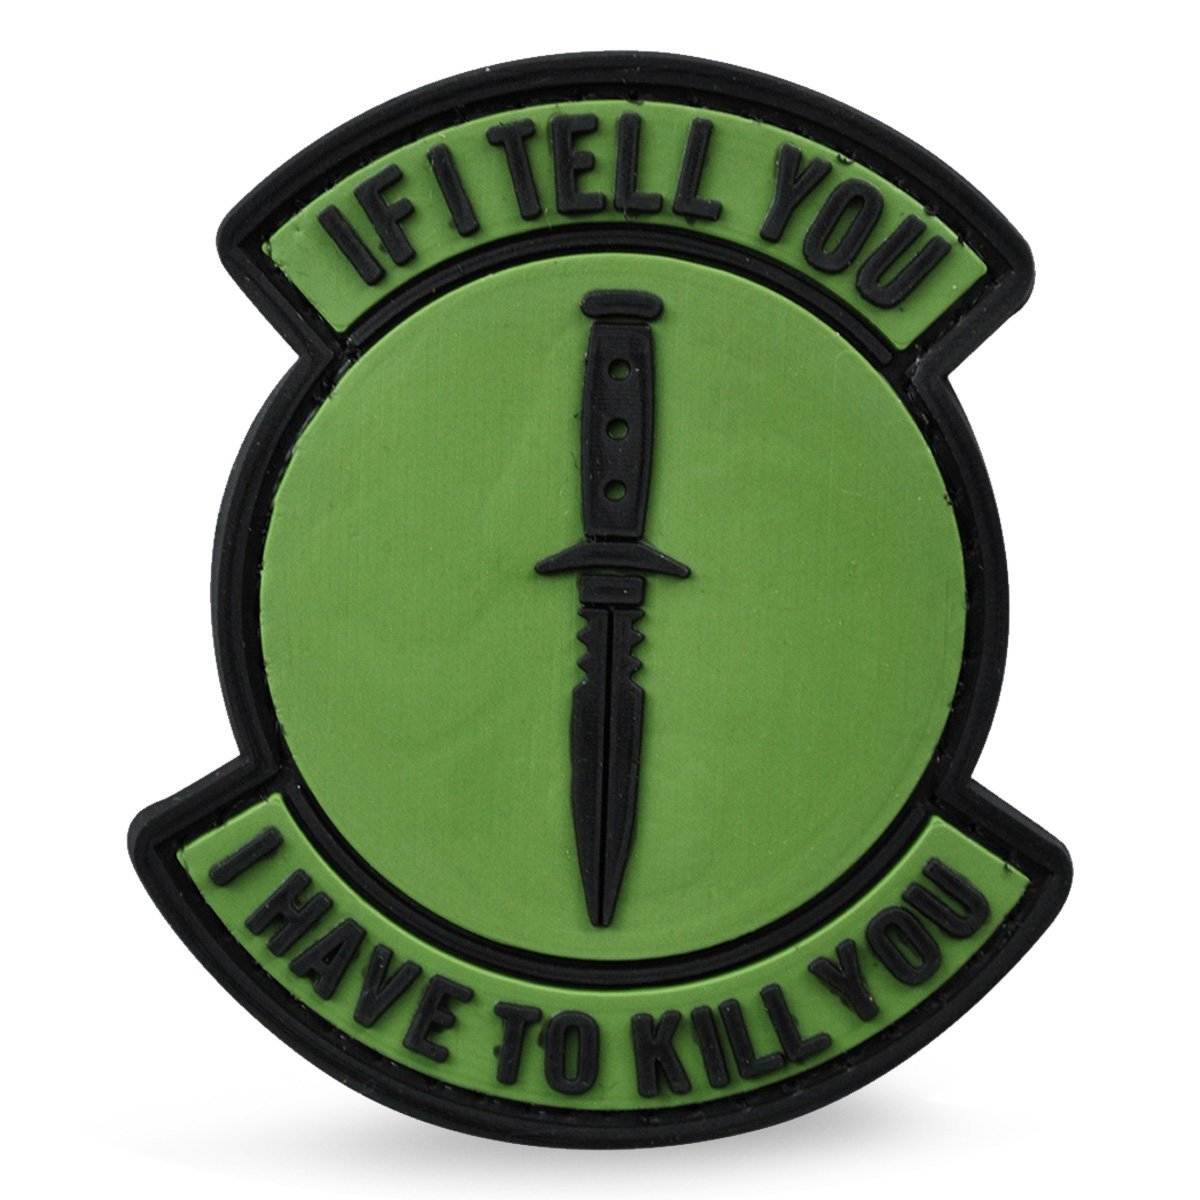 3D PVC If I Tell You I Have to Kill You Patch | UKMCPro